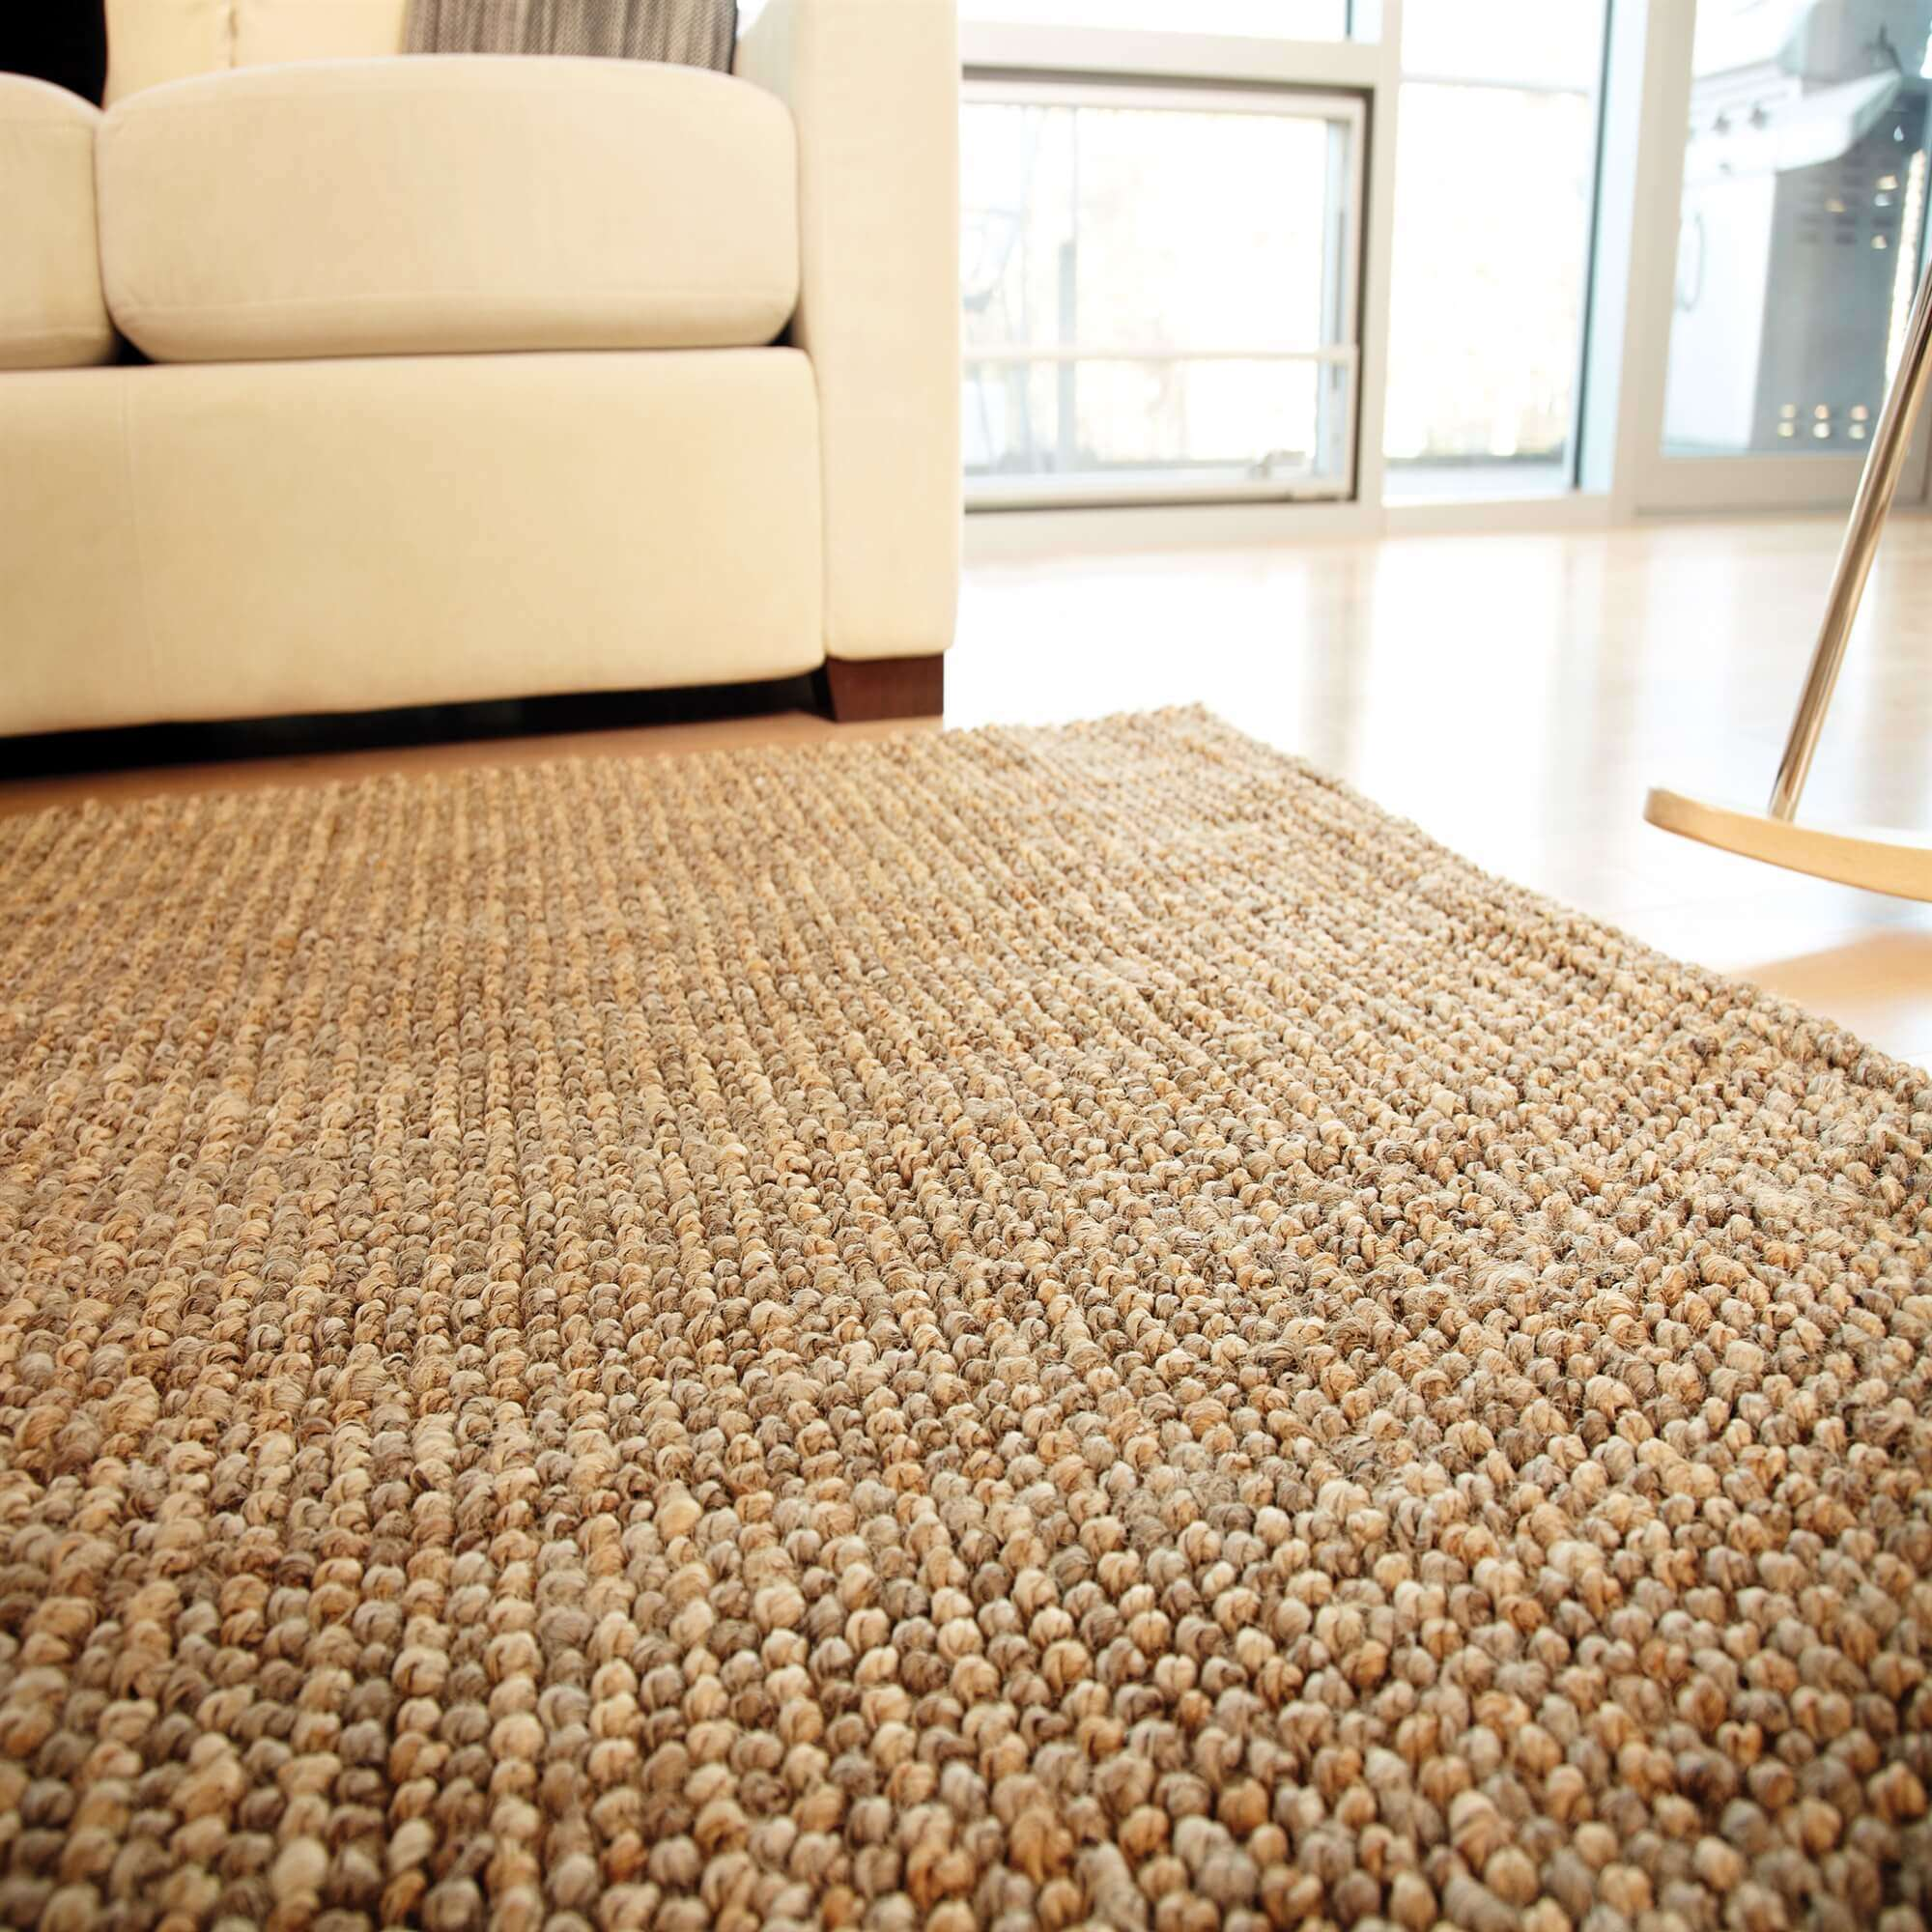 Carpets rugs natural flooring cape town carpet fitters for Floor and flooring